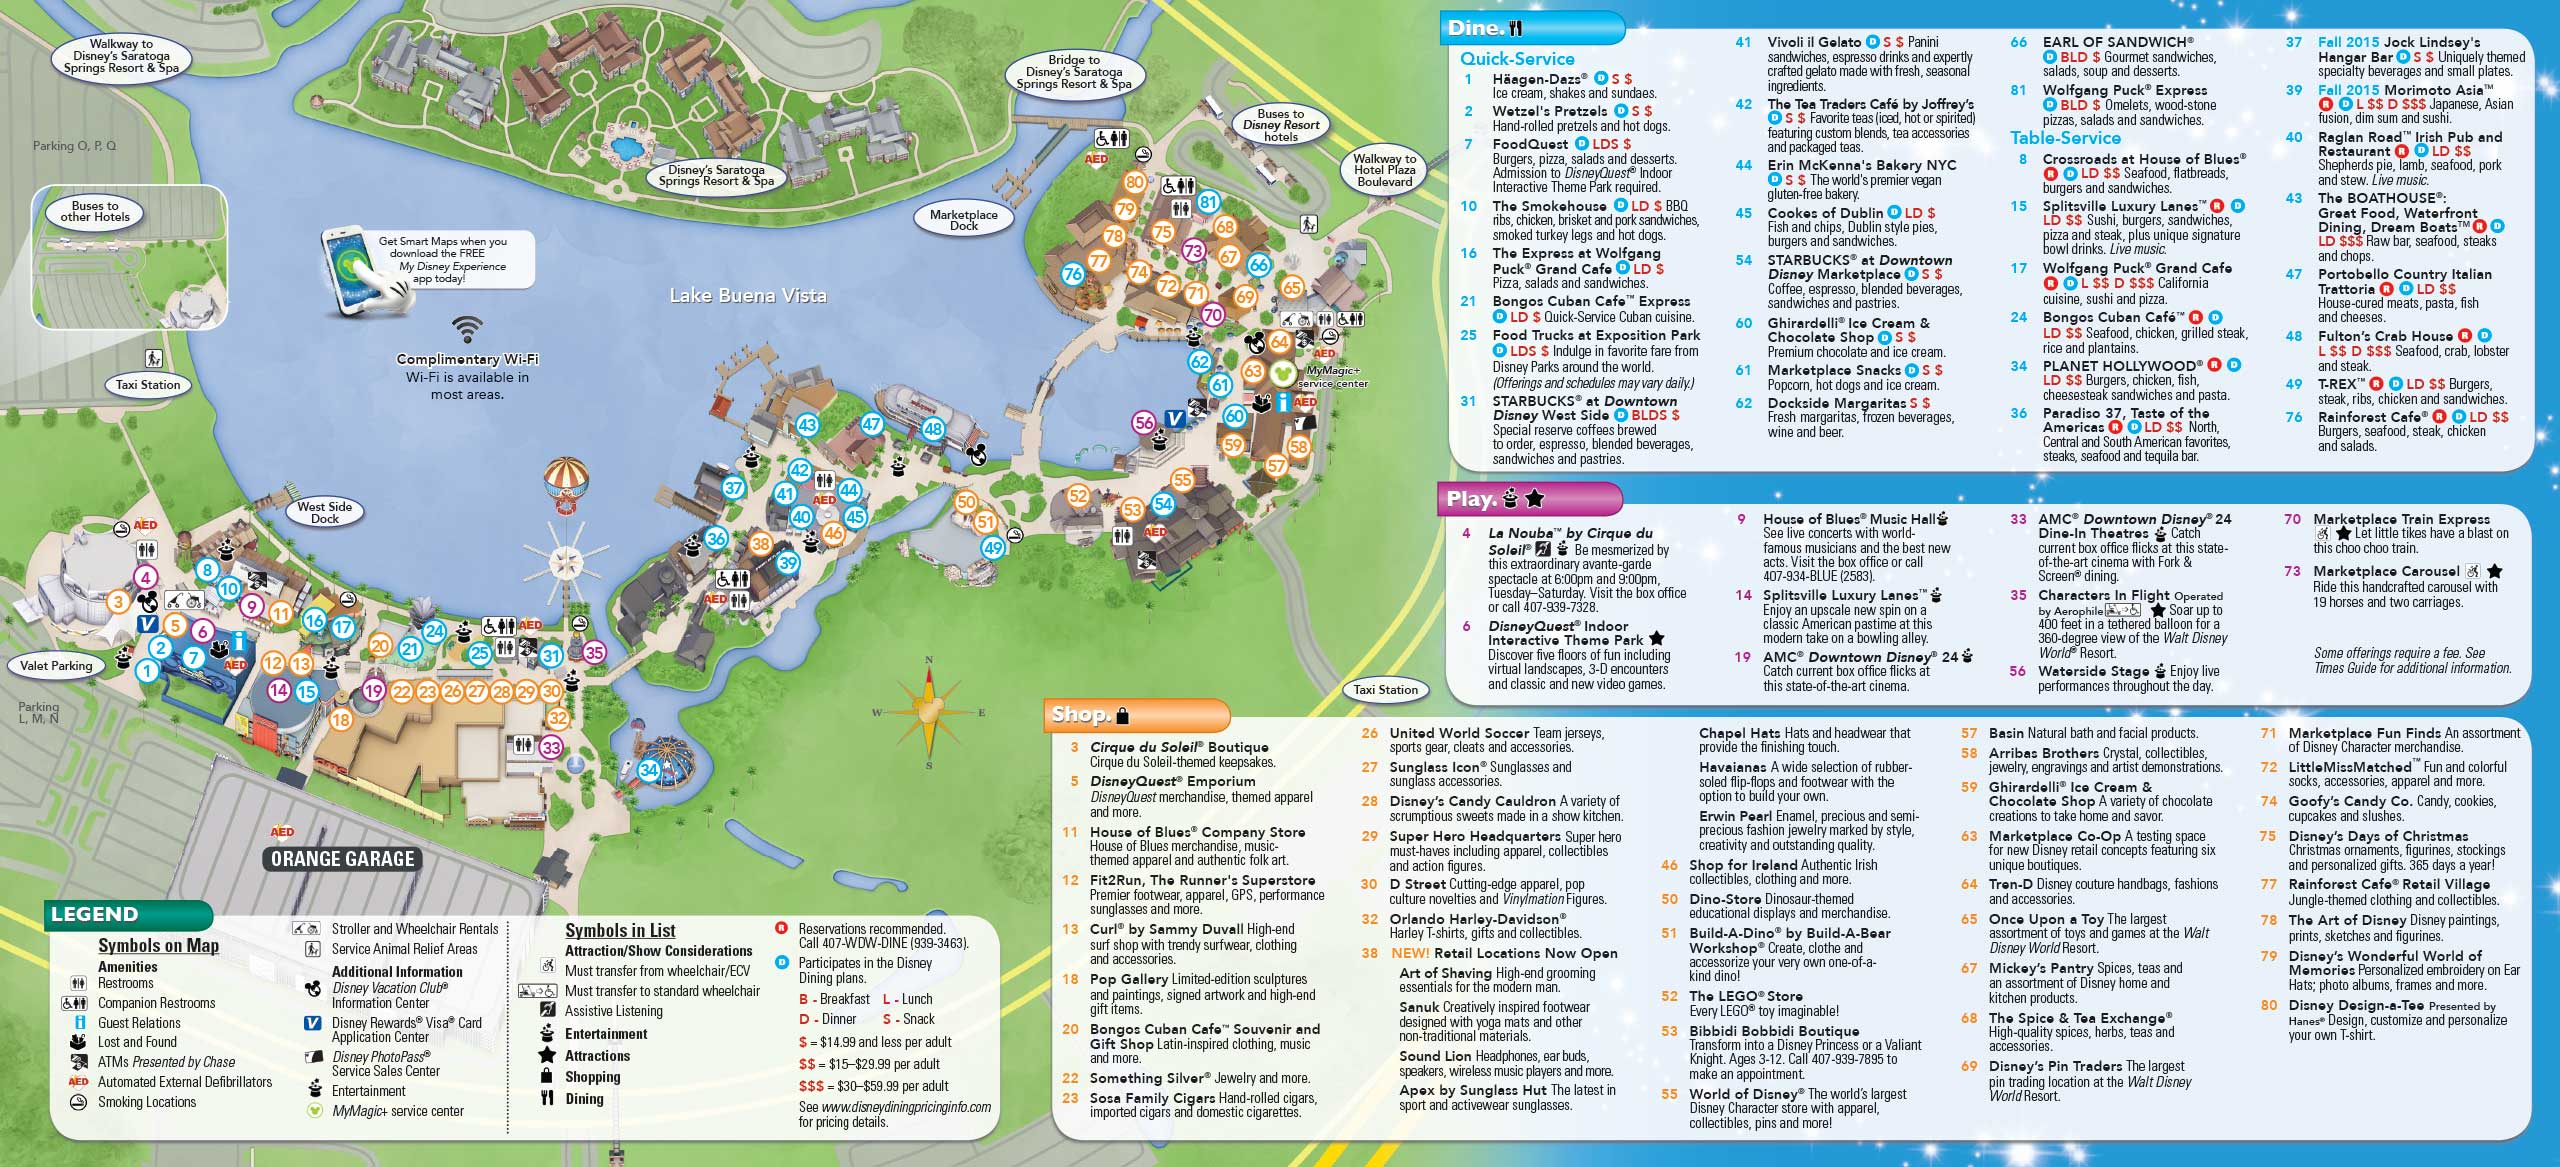 PHOTOS New Downtown Disney Guide Map Includes Disney Springs Name - Paris map 2016